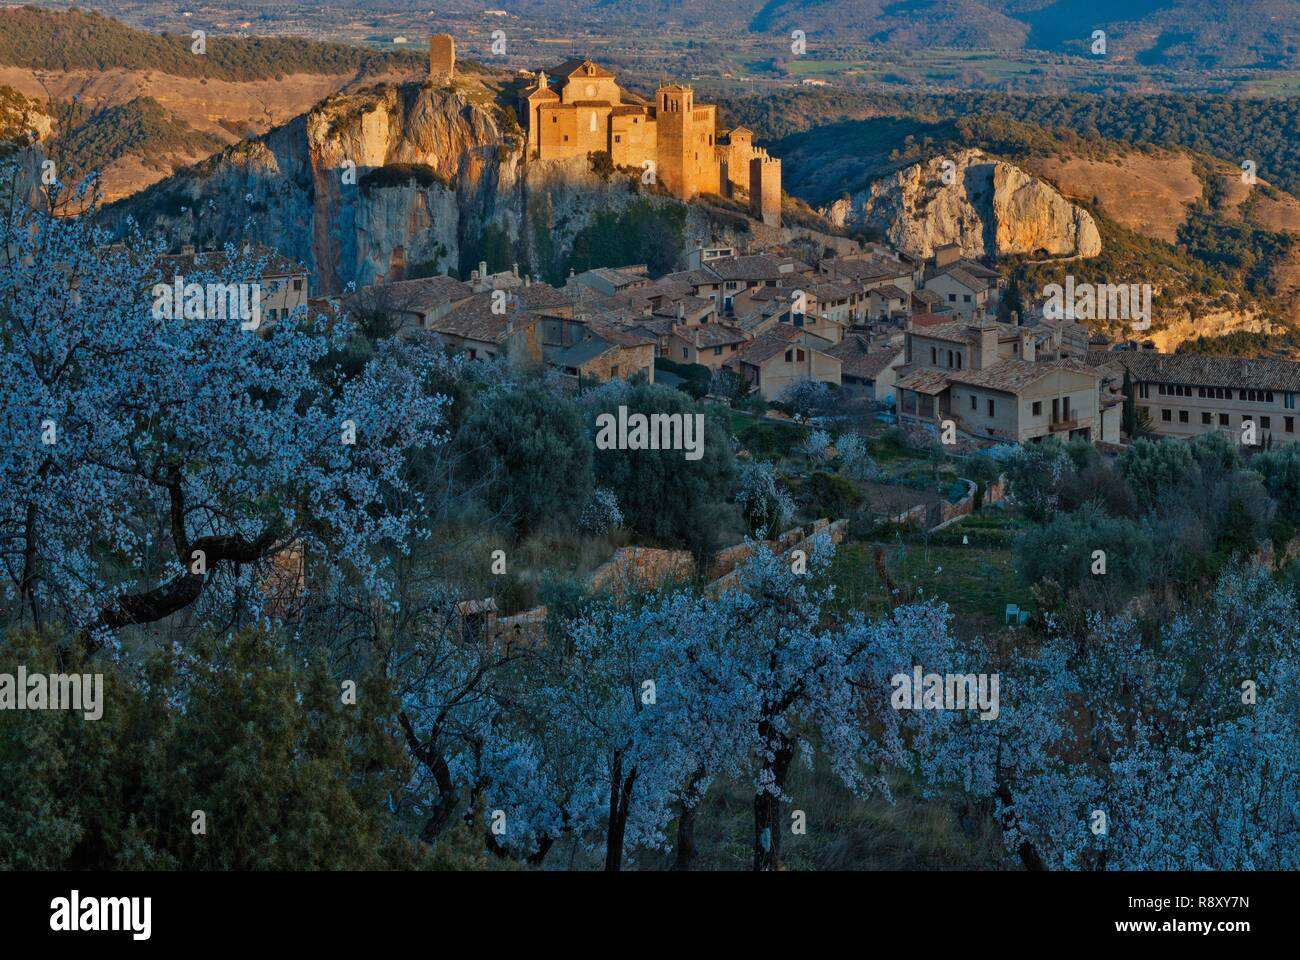 Spain, Aragon, Huesca, Alquezar, view of a medieval village perched on a rocky peak at sunset Stock Photo